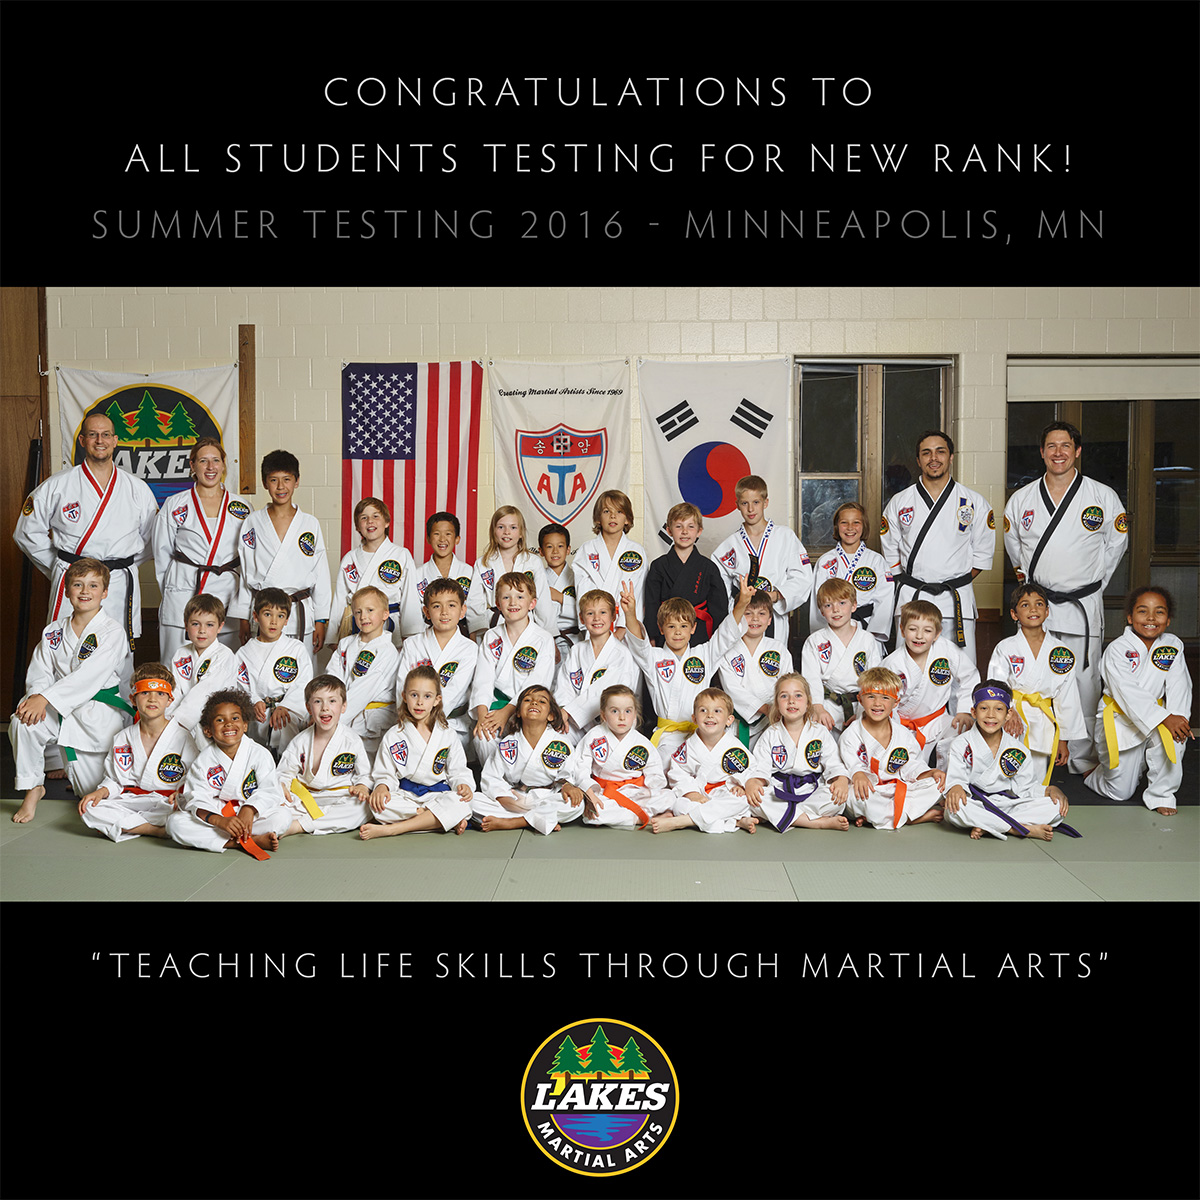 Congratulations to all the students who tested for a new rank on June 29, 2016 at Lakes Martial Arts in Minneapolis! Here is our Summer 2016 class photo: